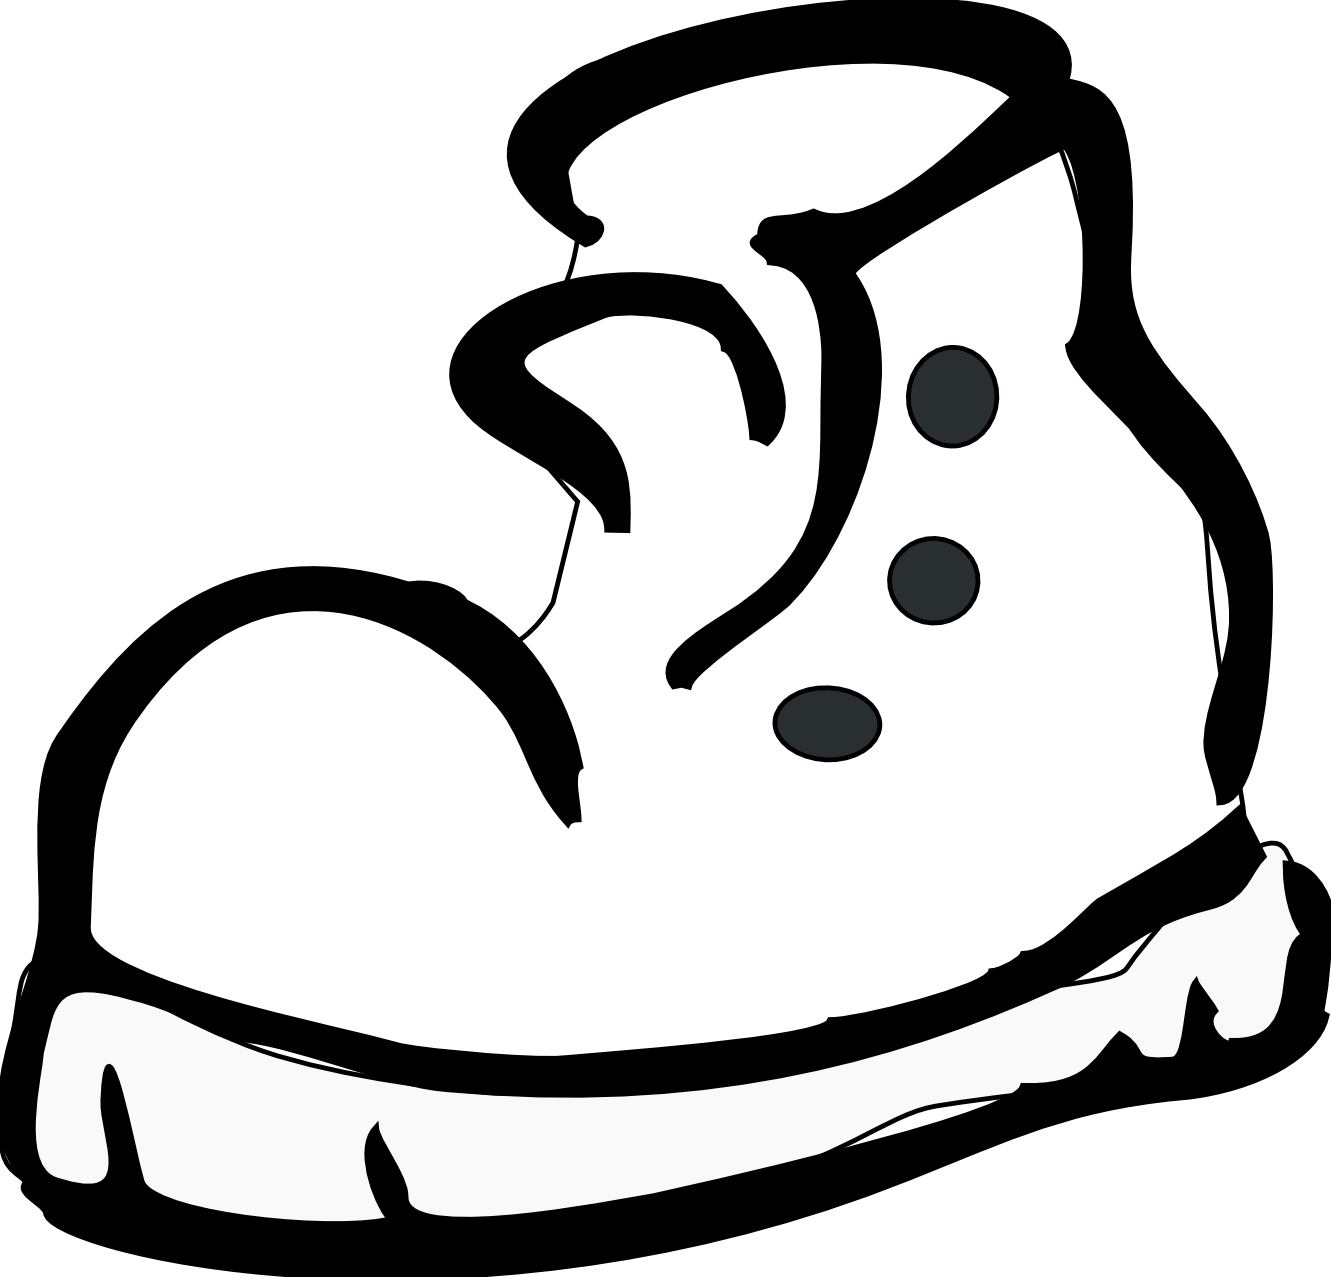 Tennis shoes clipart black and white free 5 4